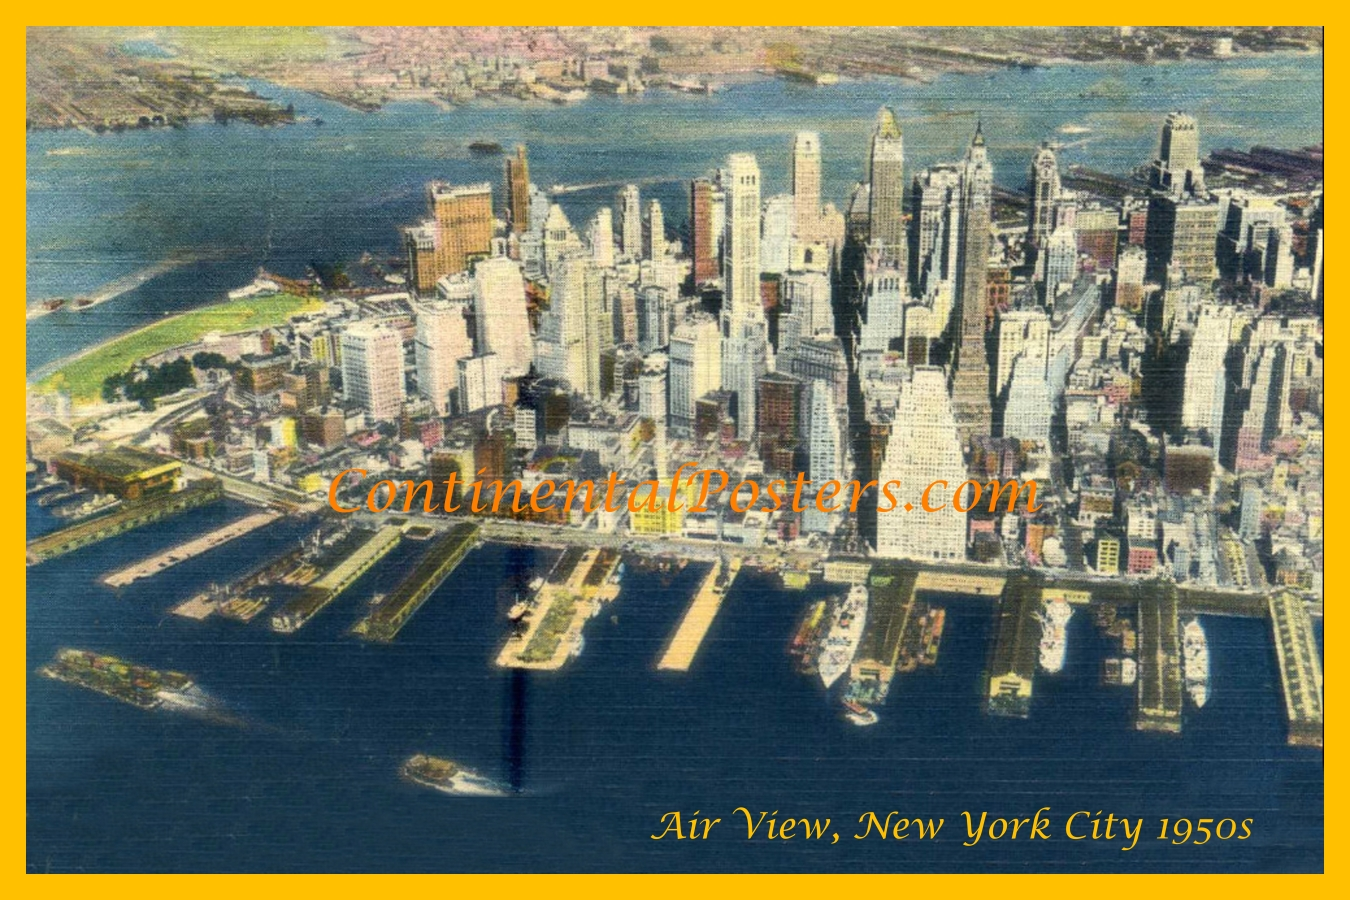 New York City CA 69  air view 1950s 3 2